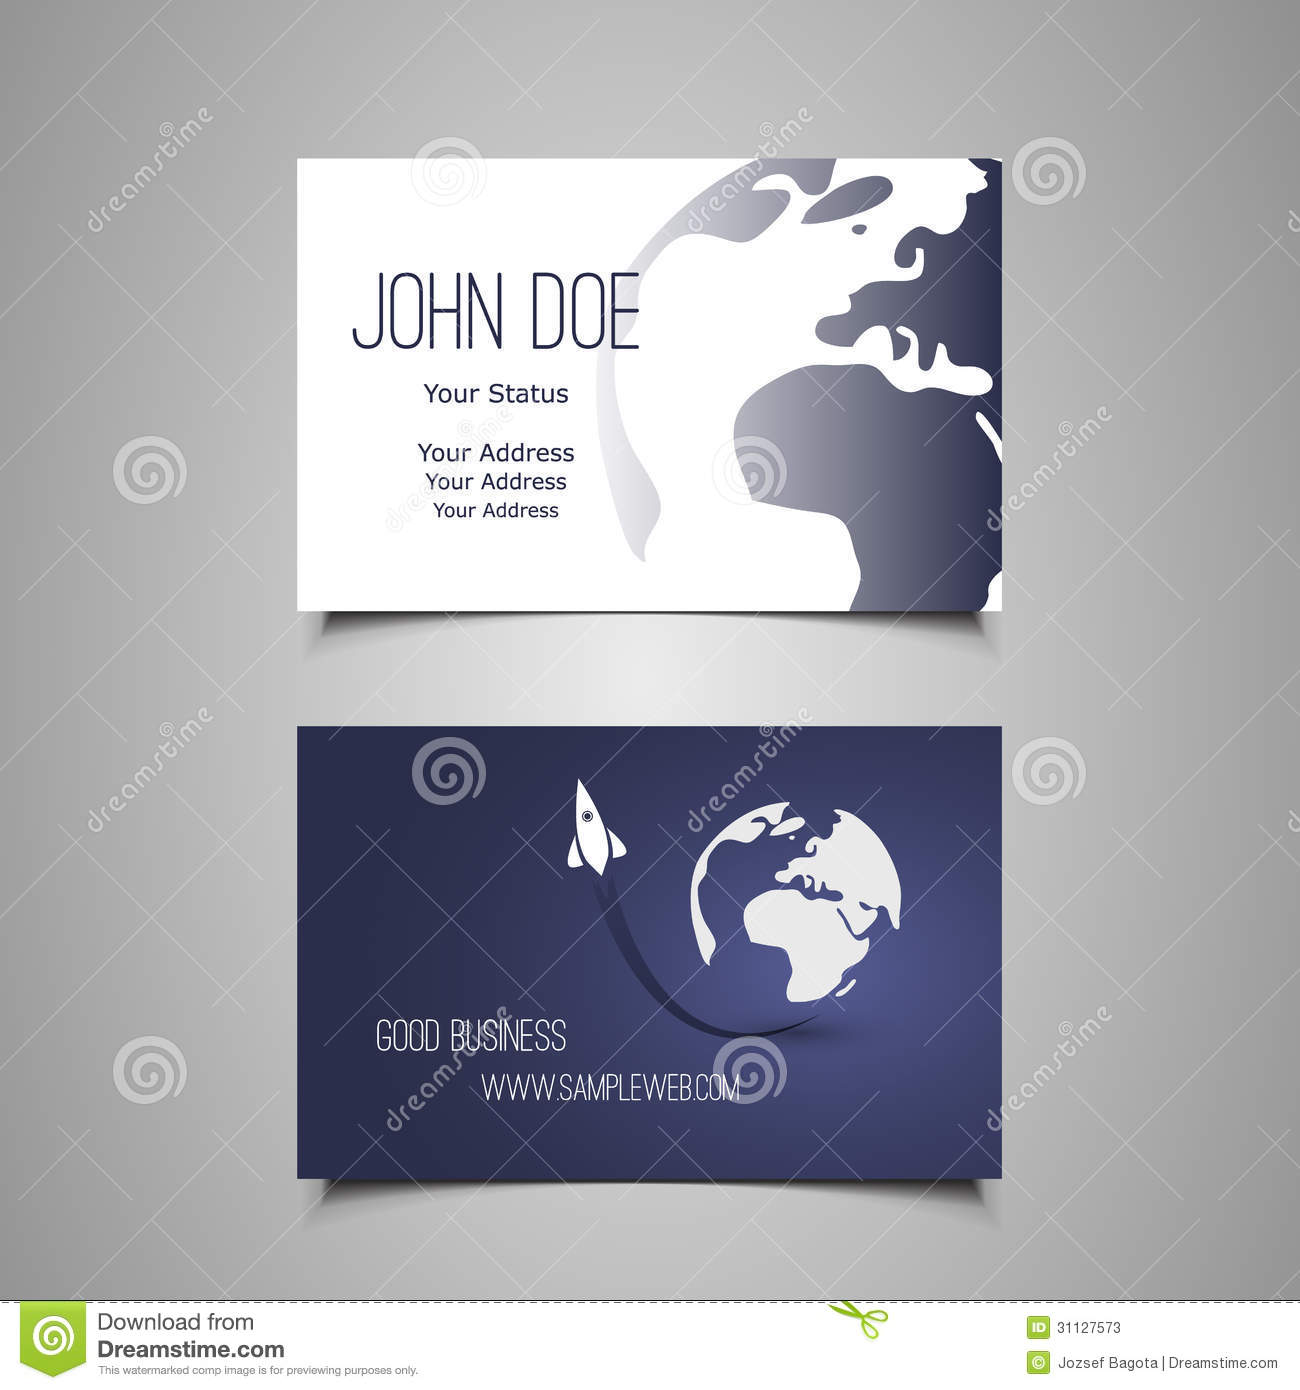 Business Card Template stock vector. Illustration of beauty - 31127573